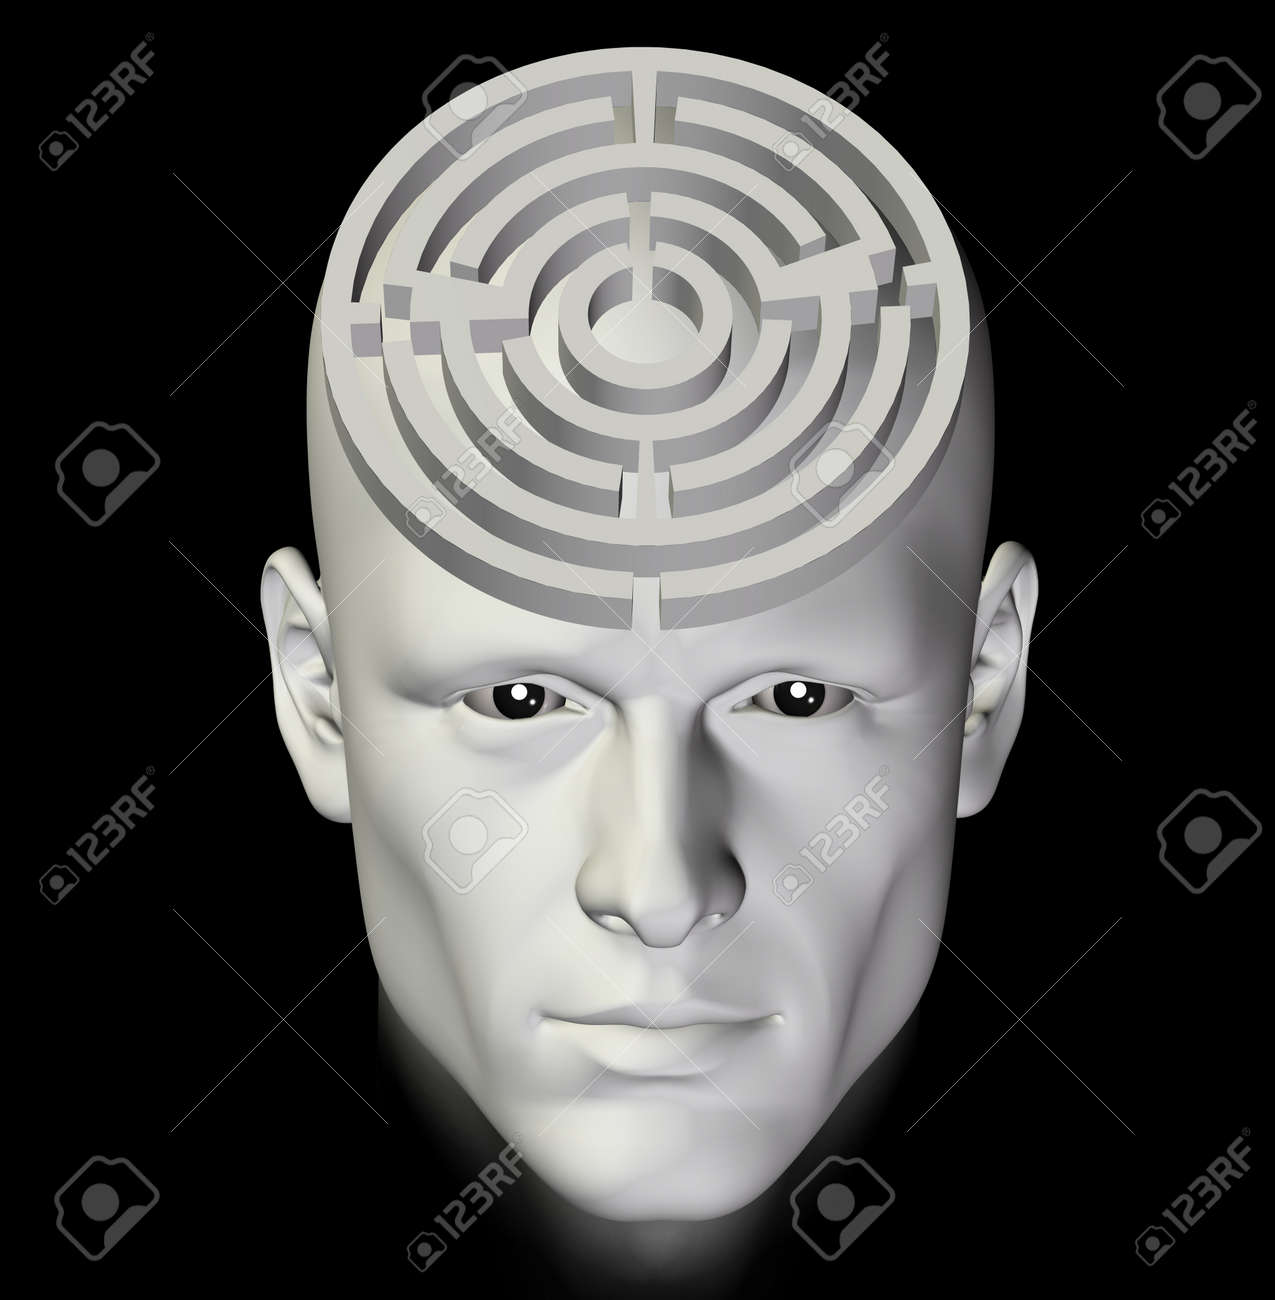 Man in a complex maze of deep thought. 3d conceptual illustration. Stock Photo - 9609443